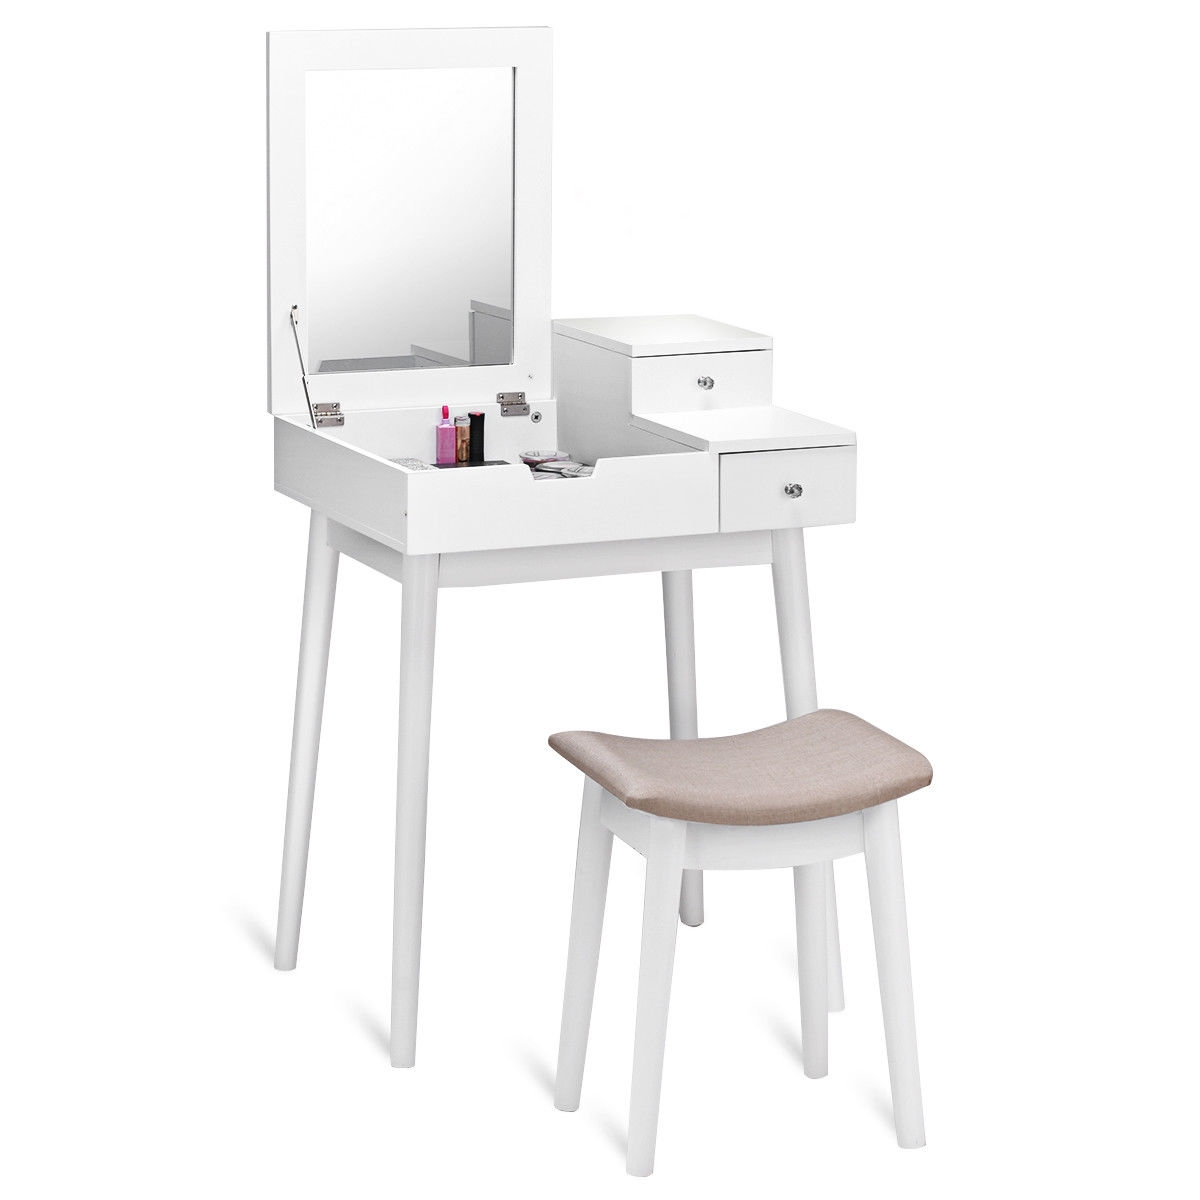 Vanity Desk Chair 127 95 Vanity Dressing Table Set Flip Mirror Desk